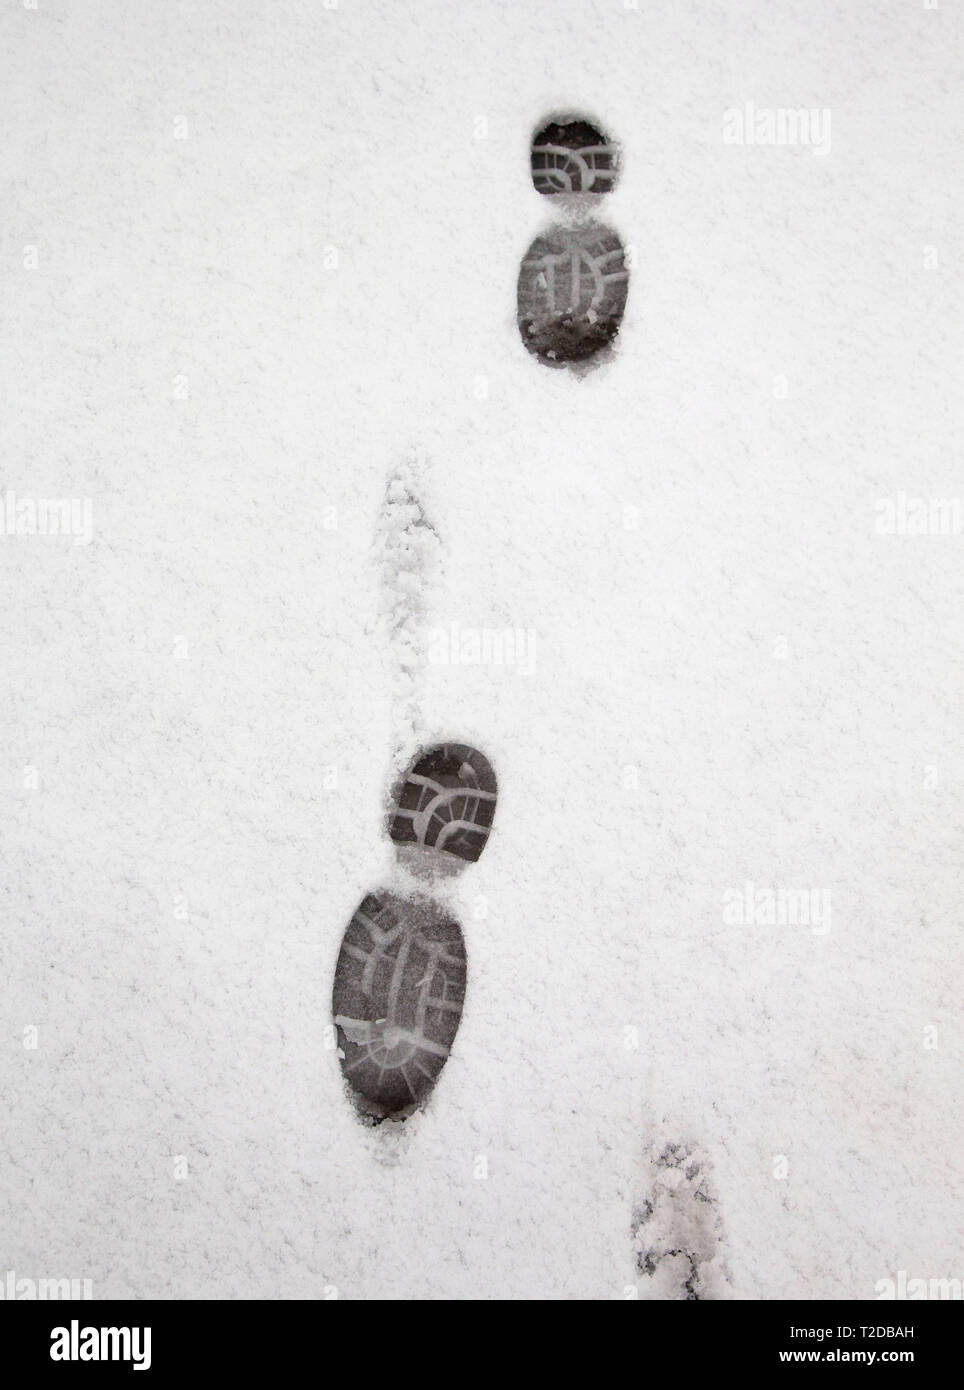 Snow tracks in snow. - Stock Image